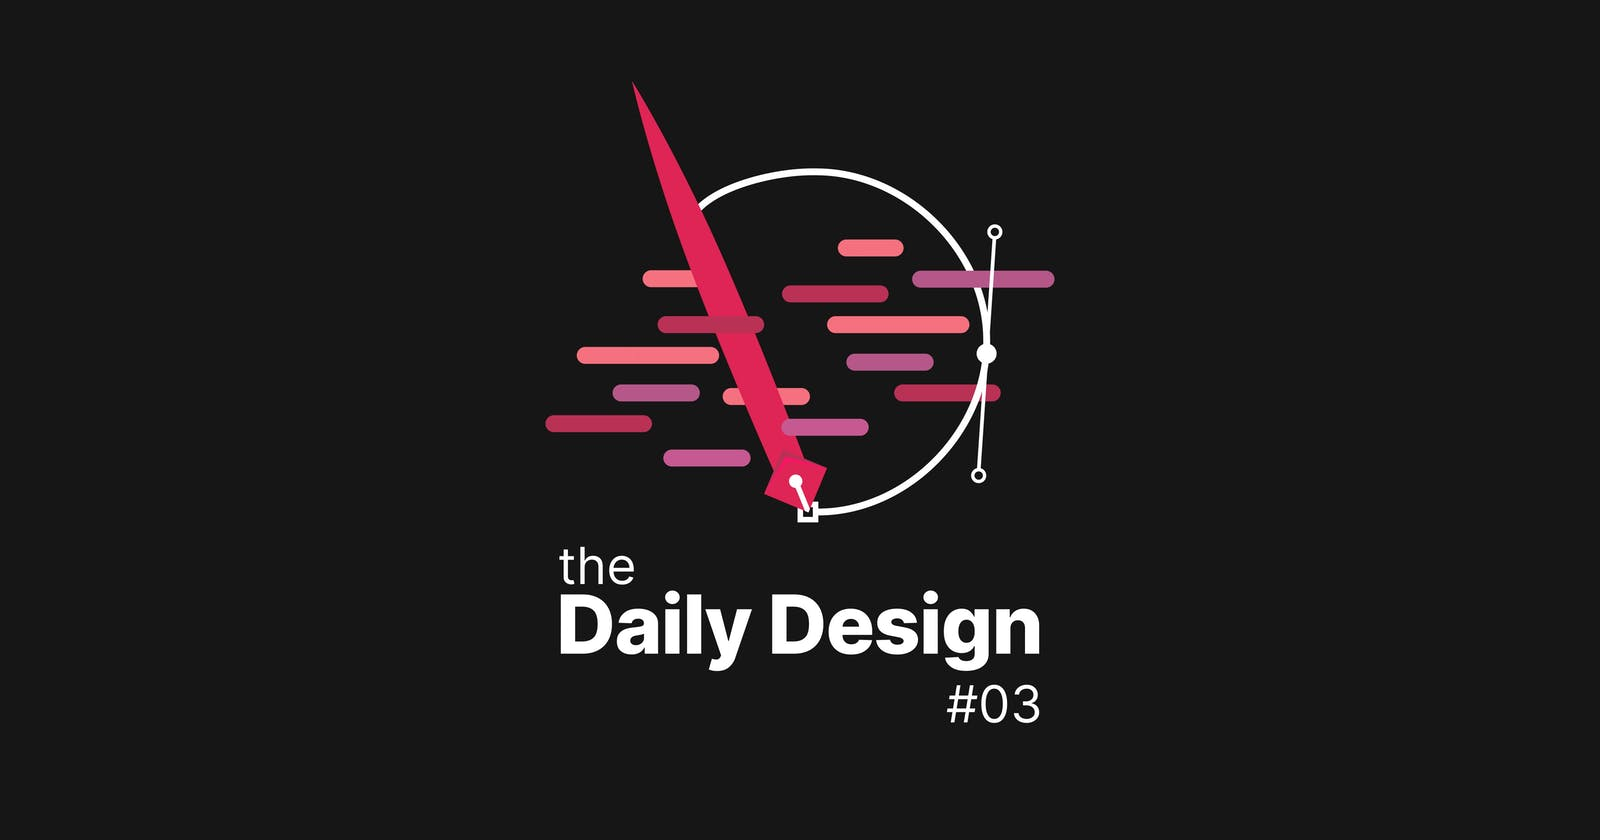 The Daily Design #03